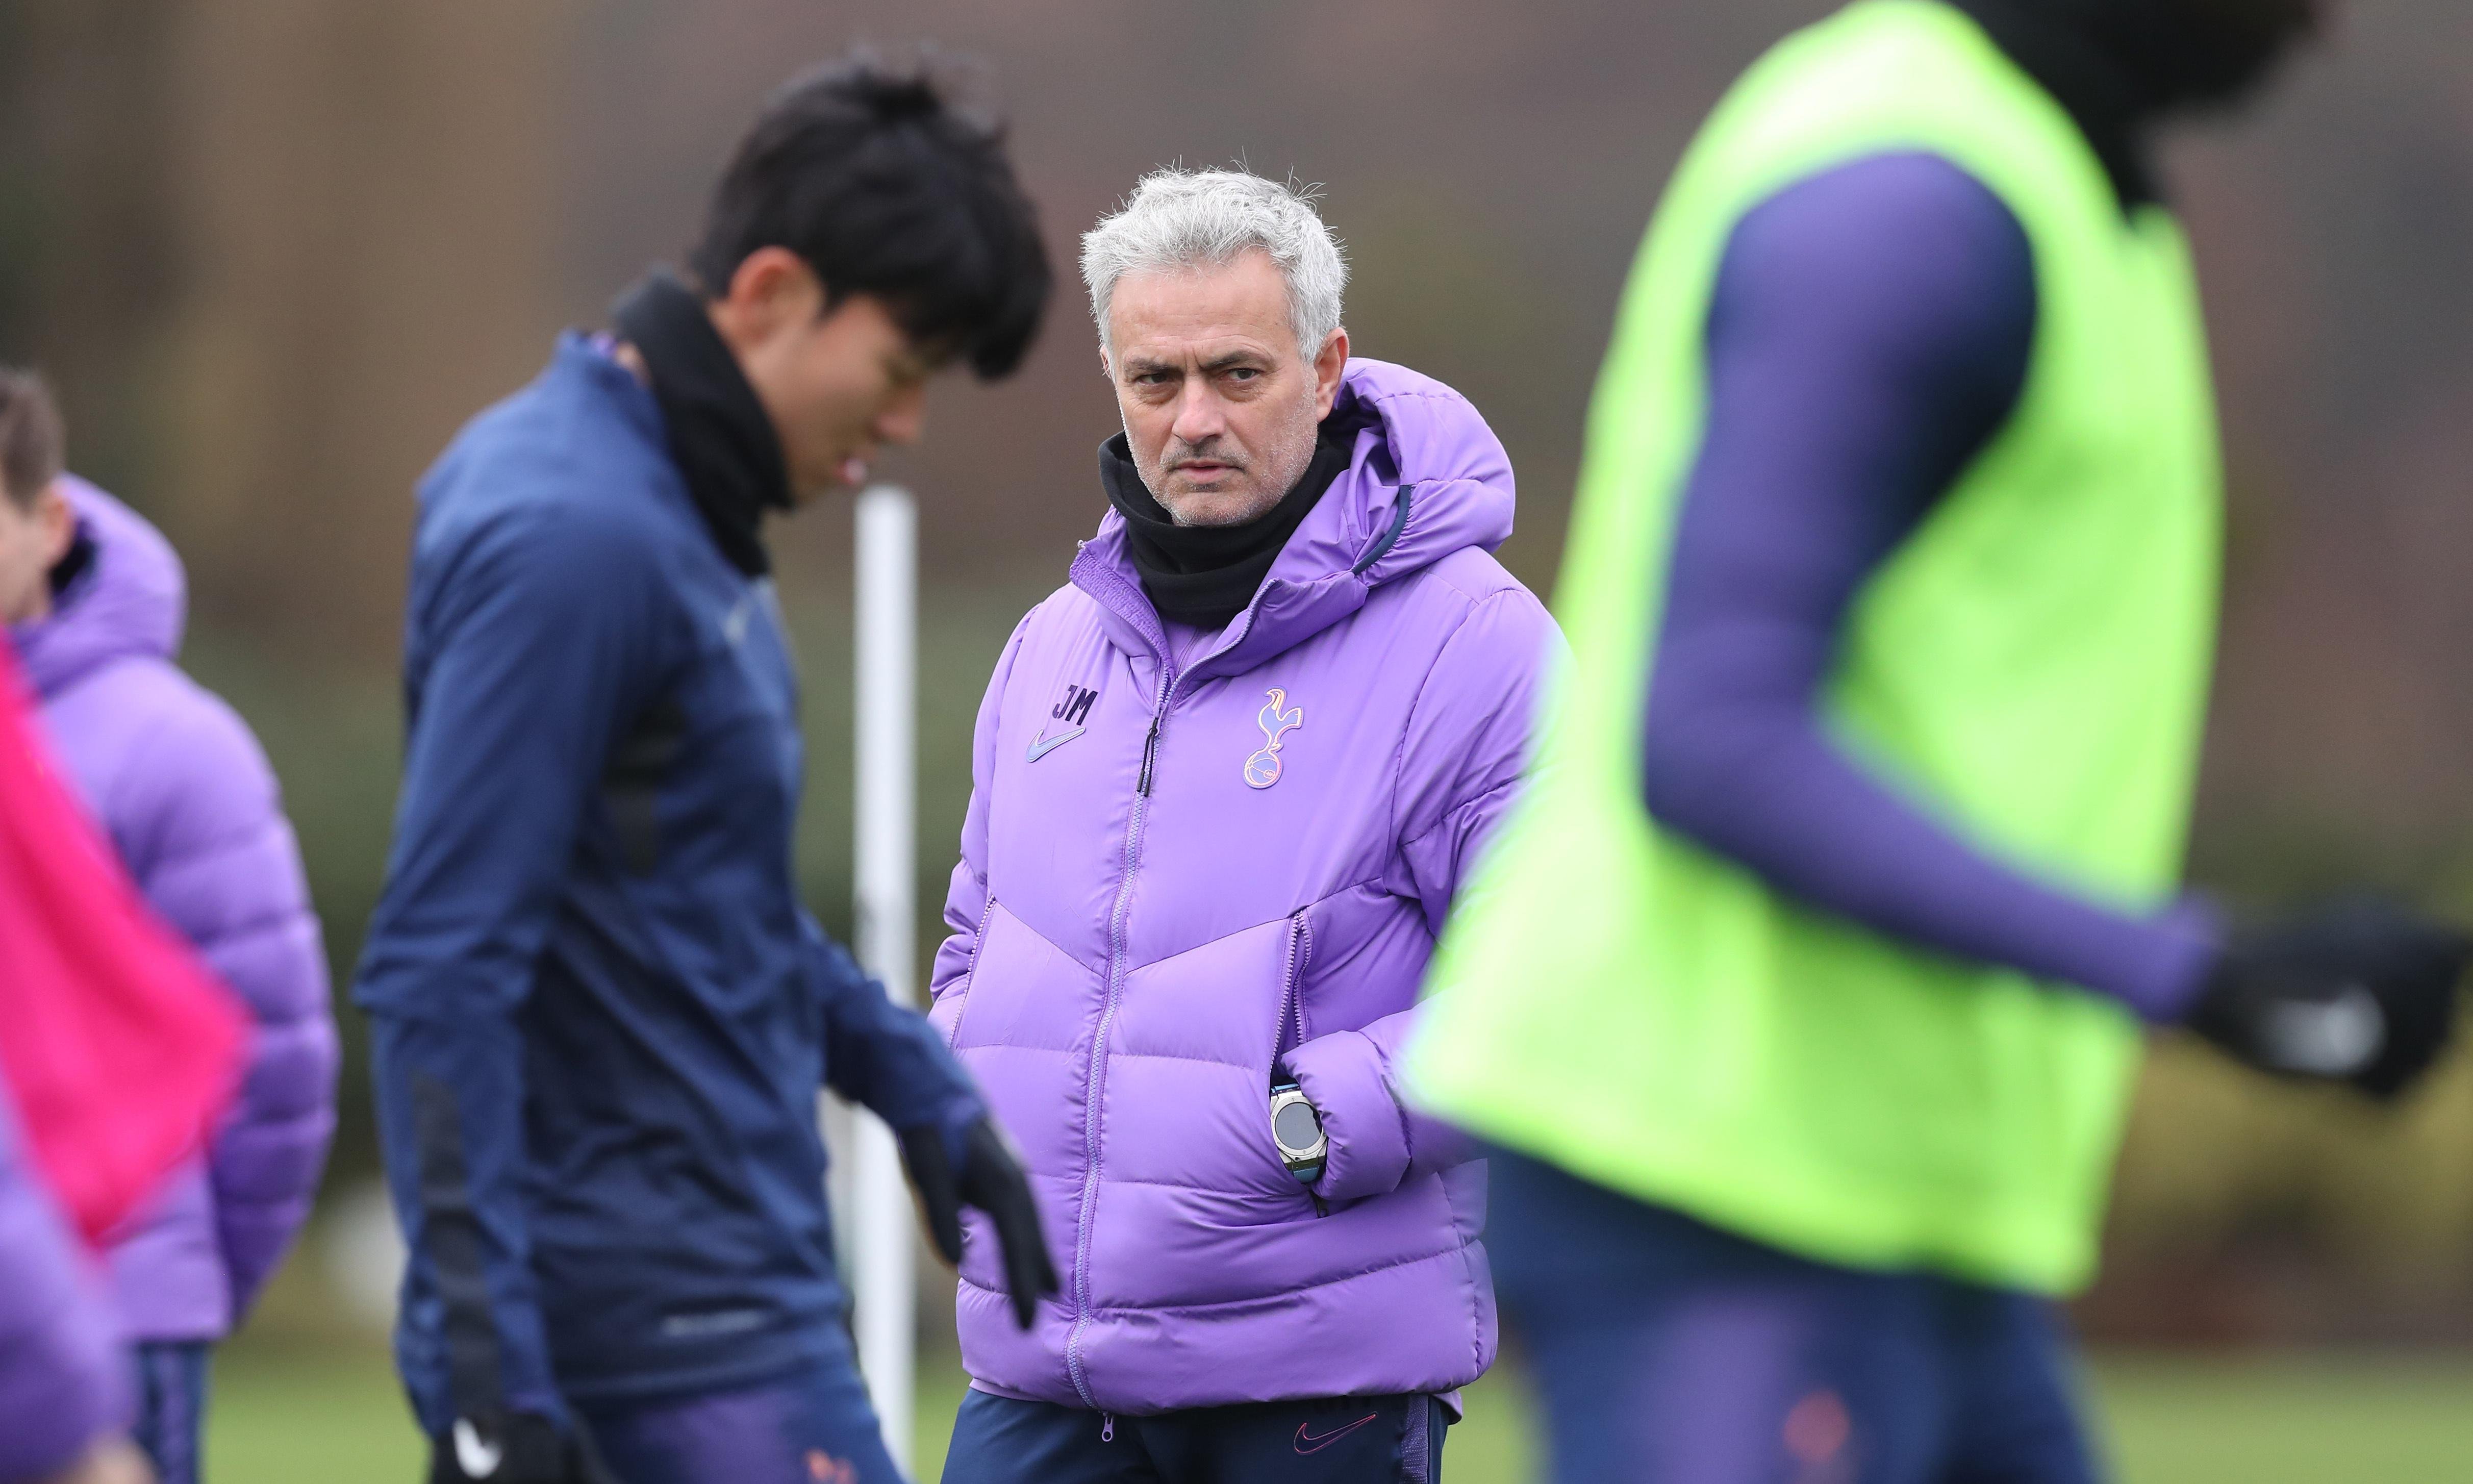 José Mourinho tells Tottenham he wants them raging not sad in defeat